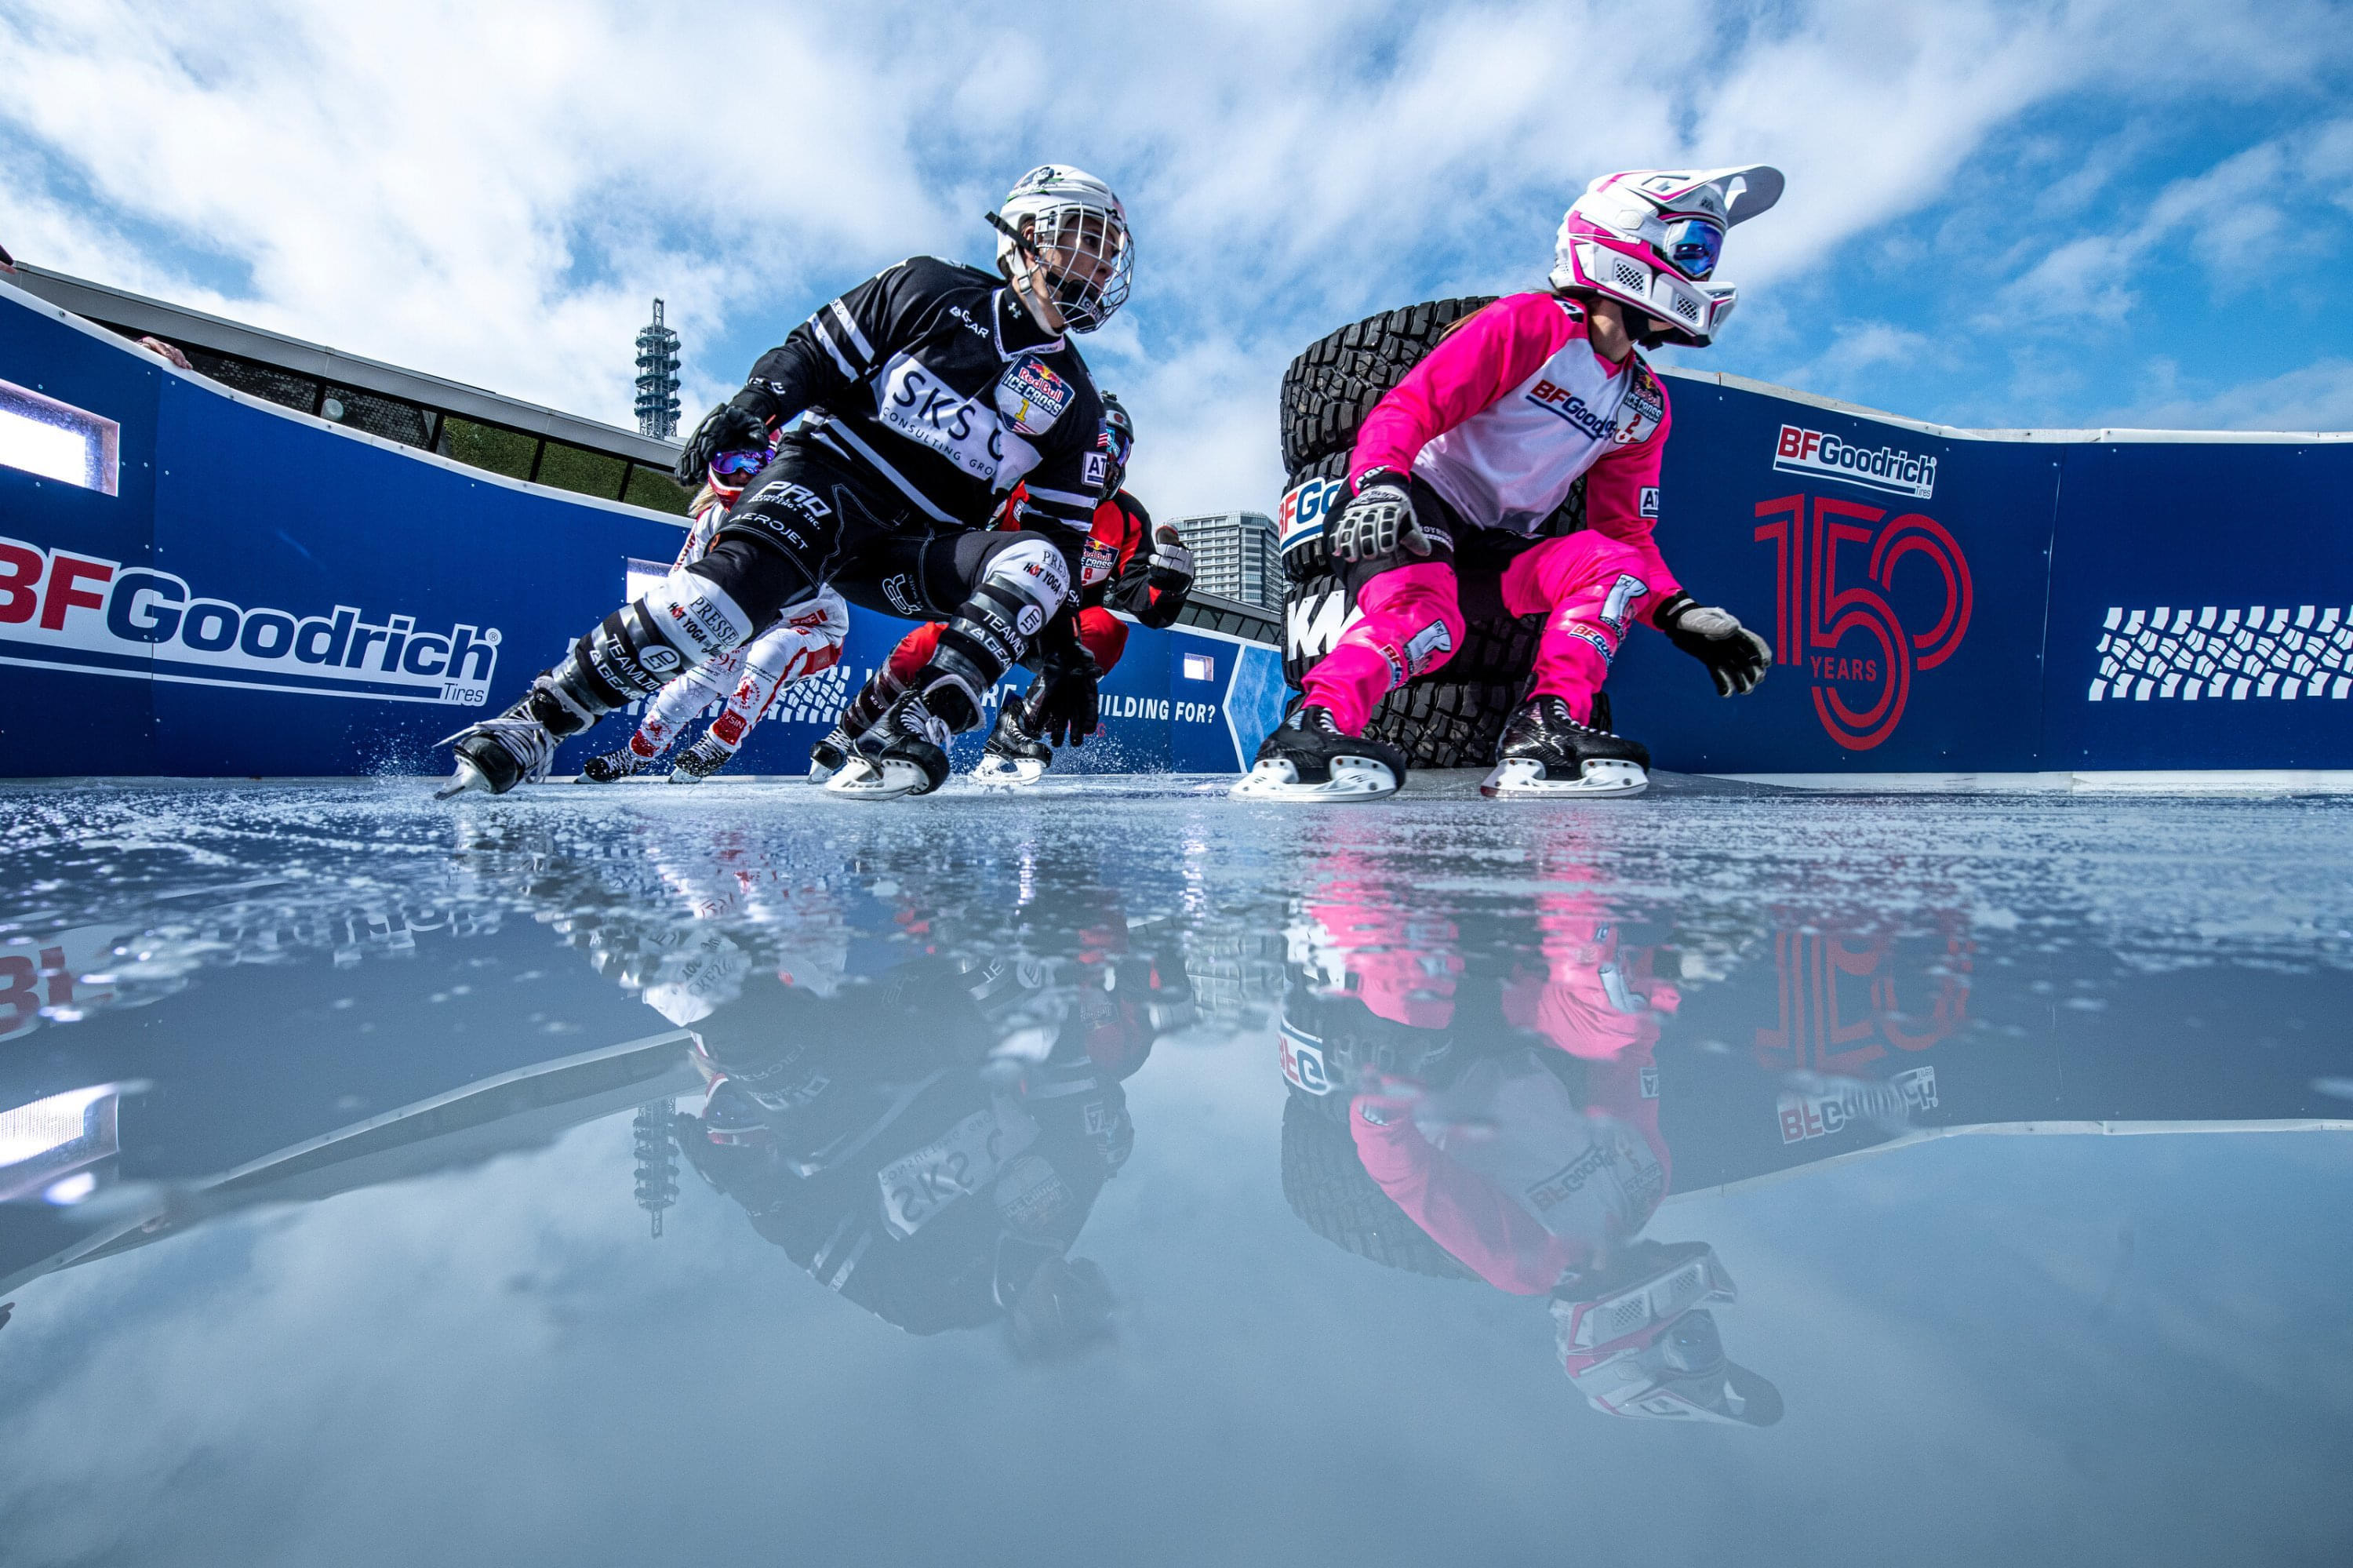 Legere and Trunzo are mirrored on the track as they tackle the BF Goodrich Toughness & Traction corner. Image: Mihai Stetcu / Red Bull Content Pool